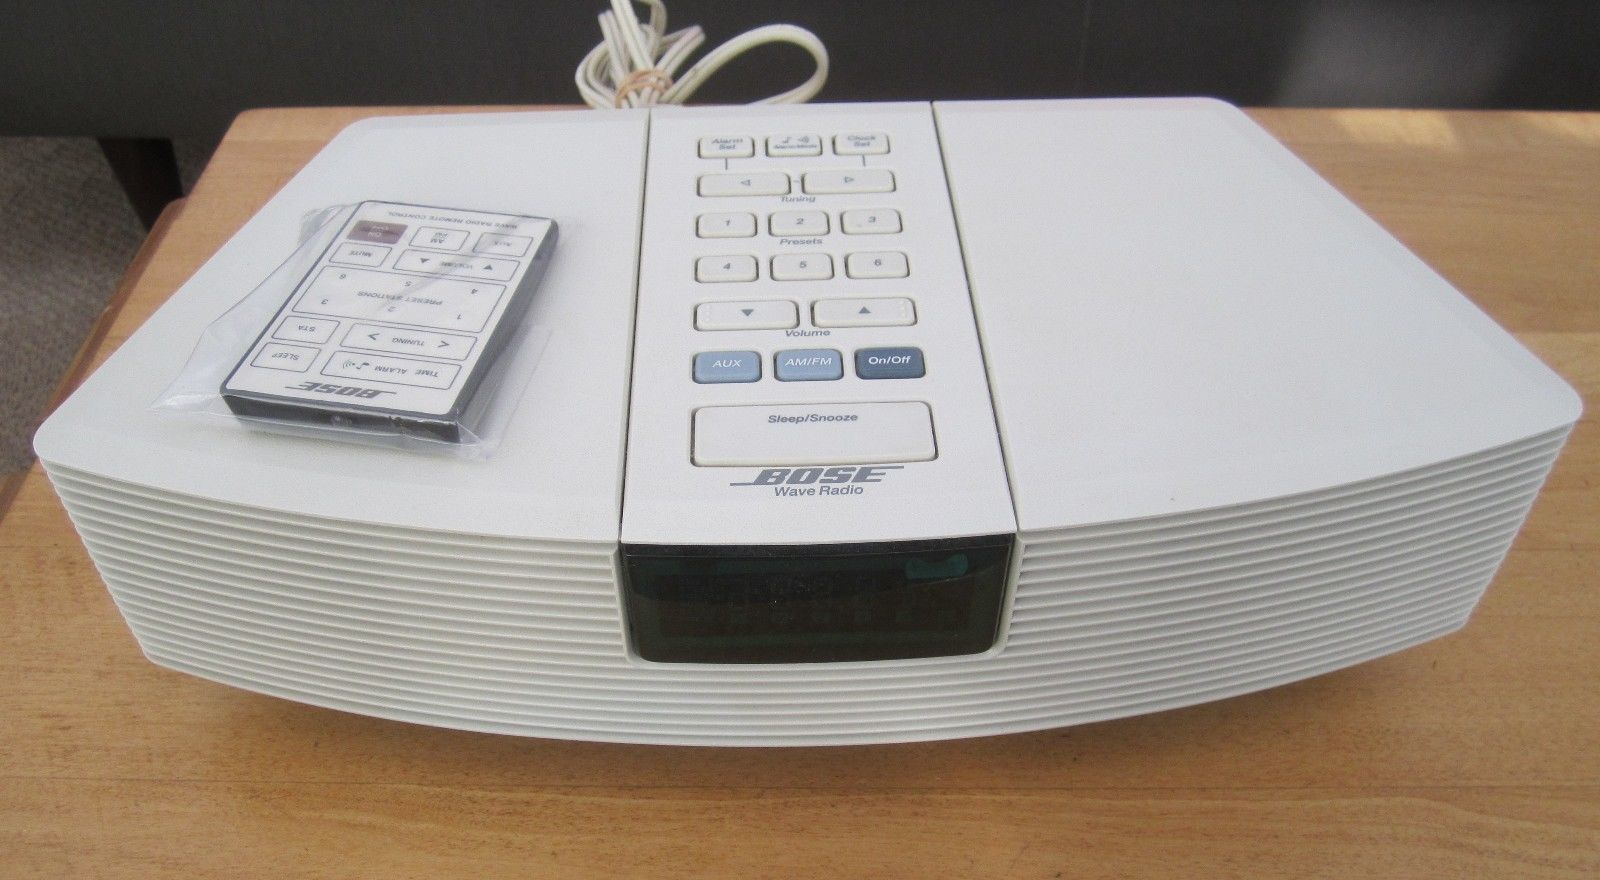 BOSE WAVE RADIO - MODEL AWR1W1 w/ NEW remote. Included : as shown - with  power cord. PDF of manual upon request. 9V back up battery not included.